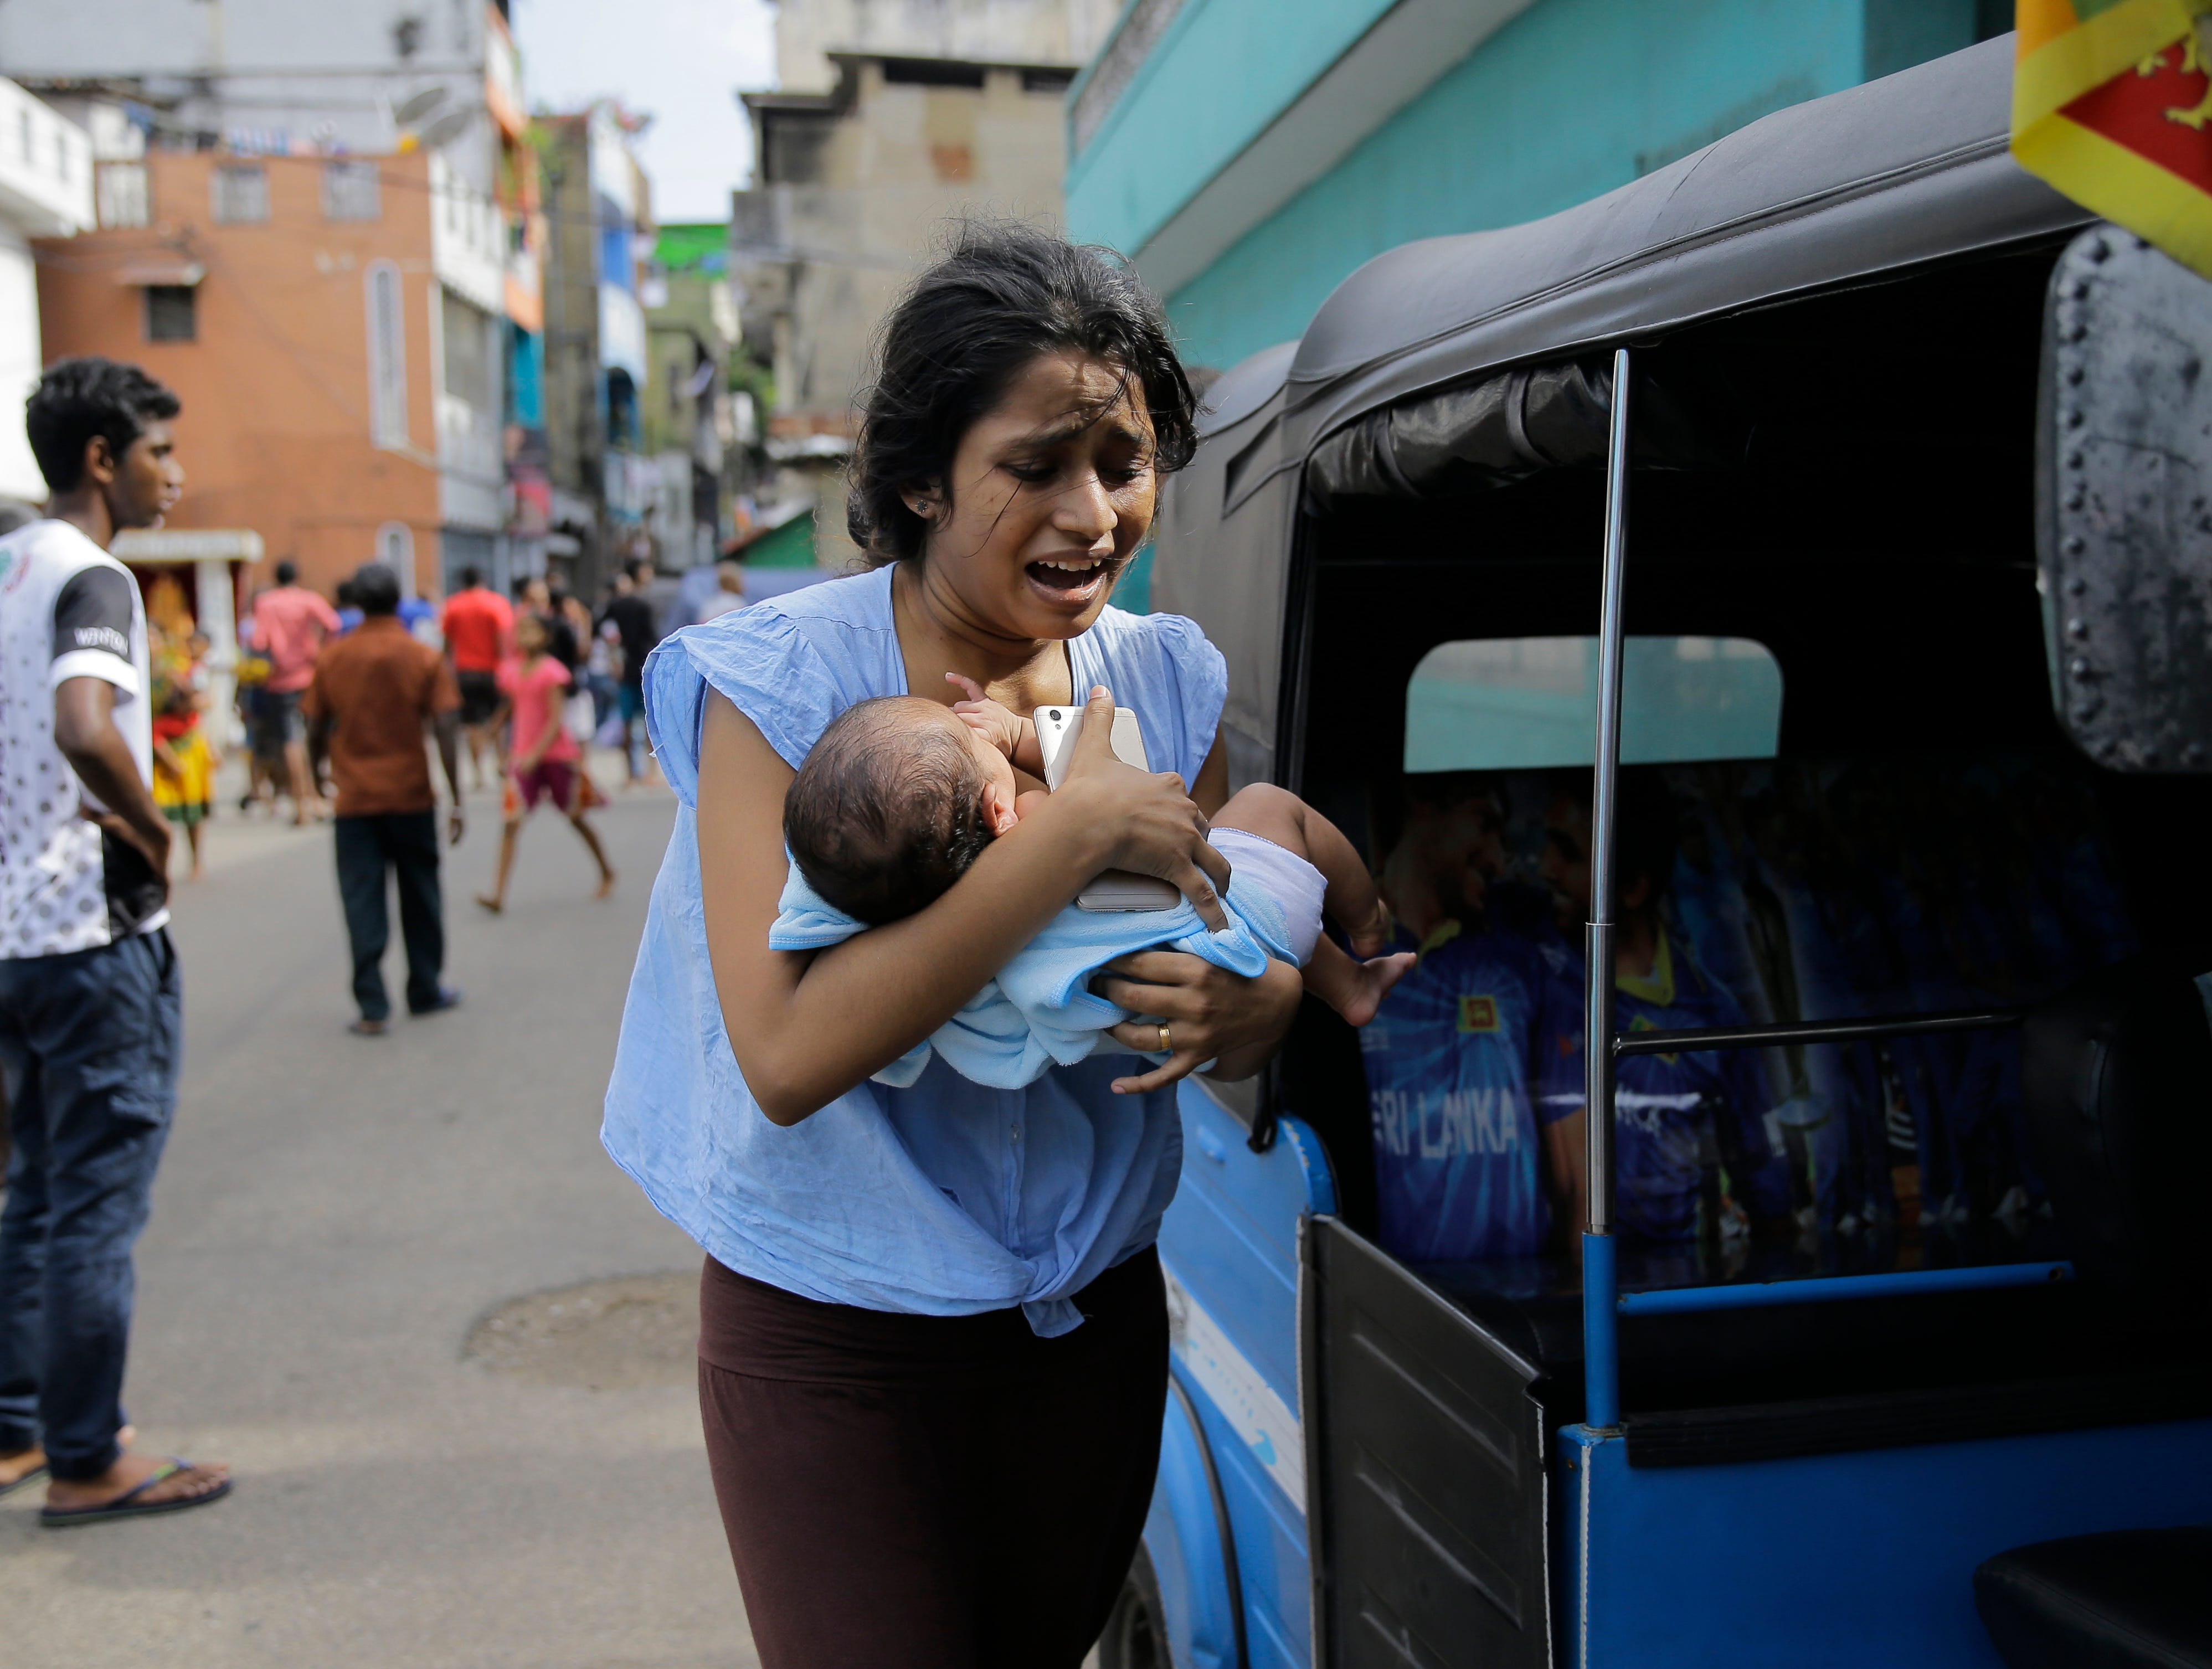 A Sri Lankan woman living near St. Anthony's shrine runs for safety with her infant after police found explosive devices in a parked vehicle in Colombo, Sri Lanka, Monday, April 22, 2019. Easter Sunday bombings that ripped through churches and luxury hotels killed more than 200 people.